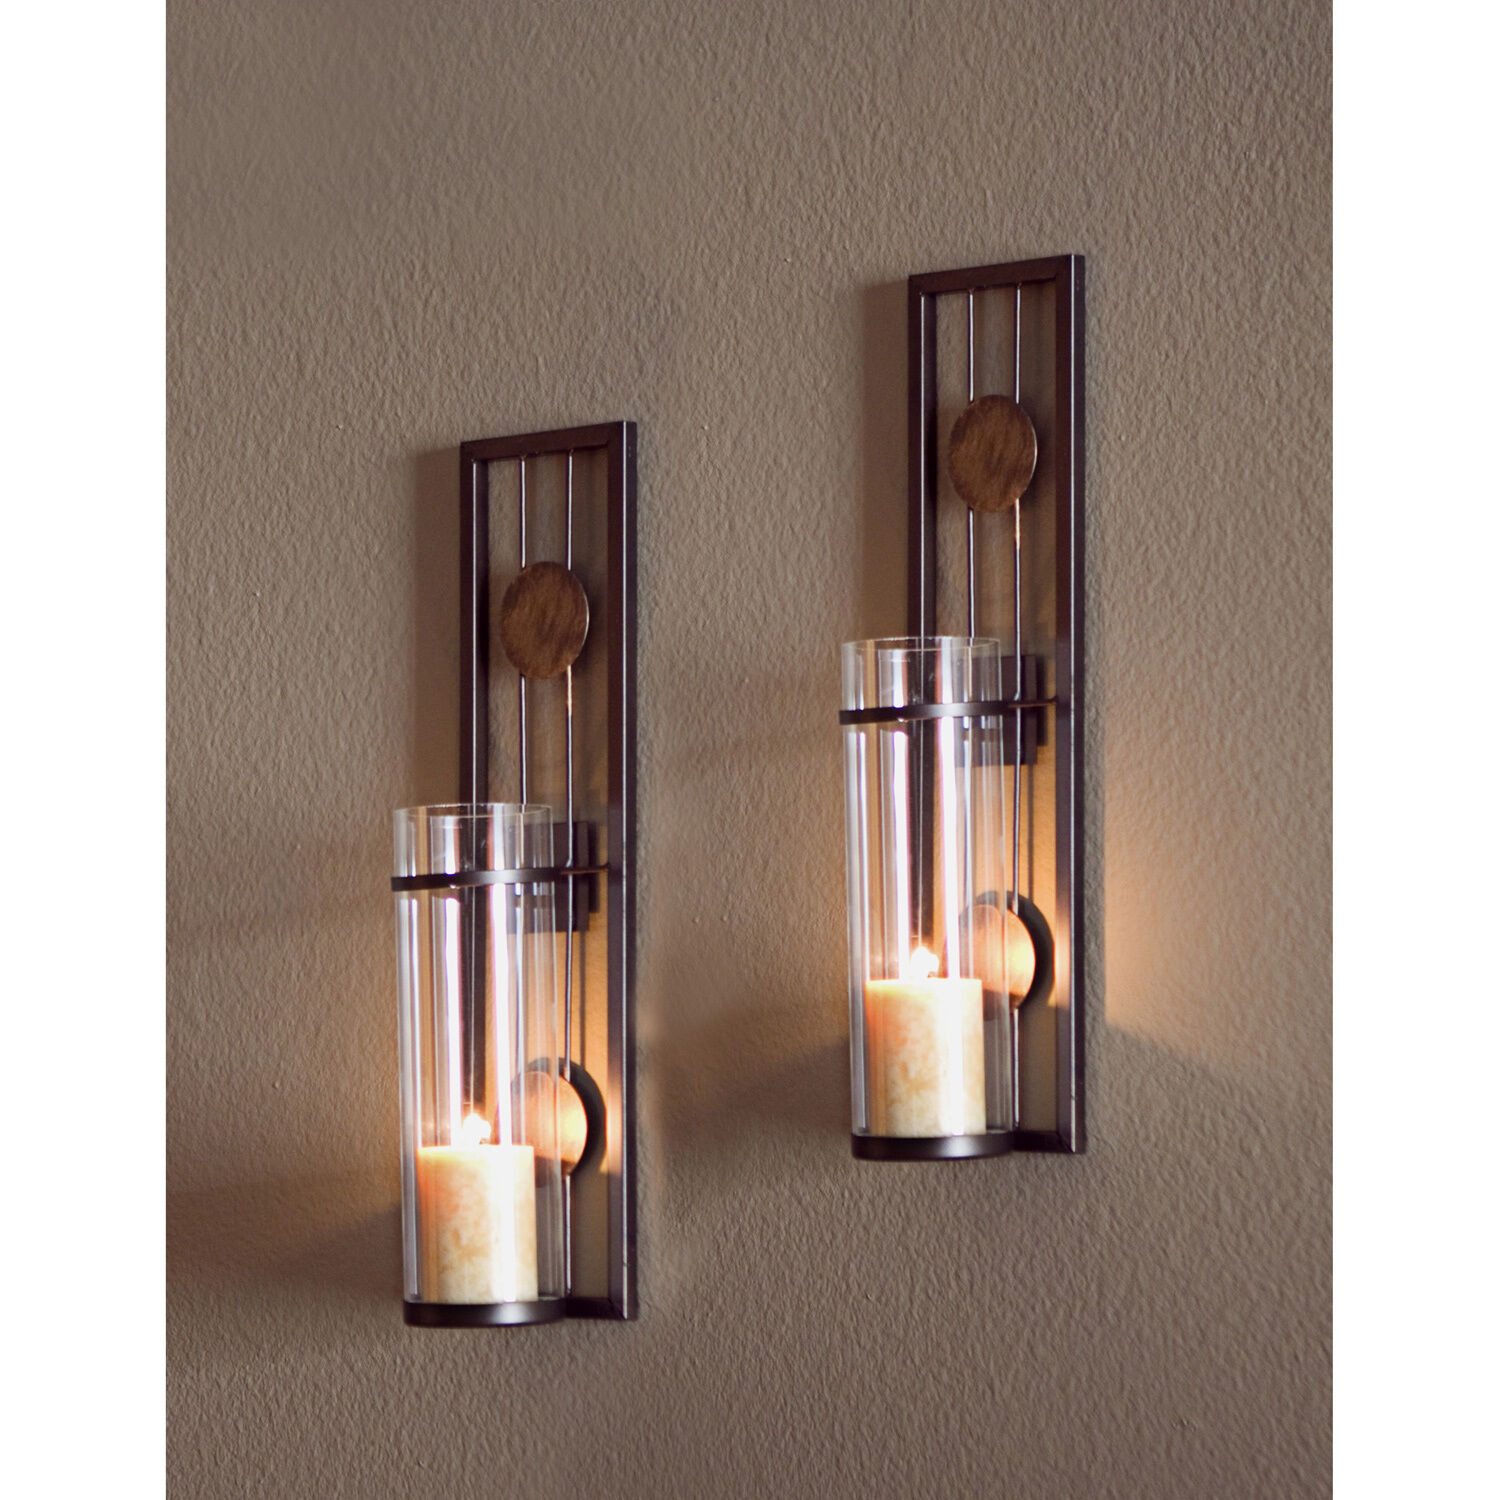 Wall sconce candle holder contemporary design modern metal glass picture 1 of 3 amipublicfo Choice Image